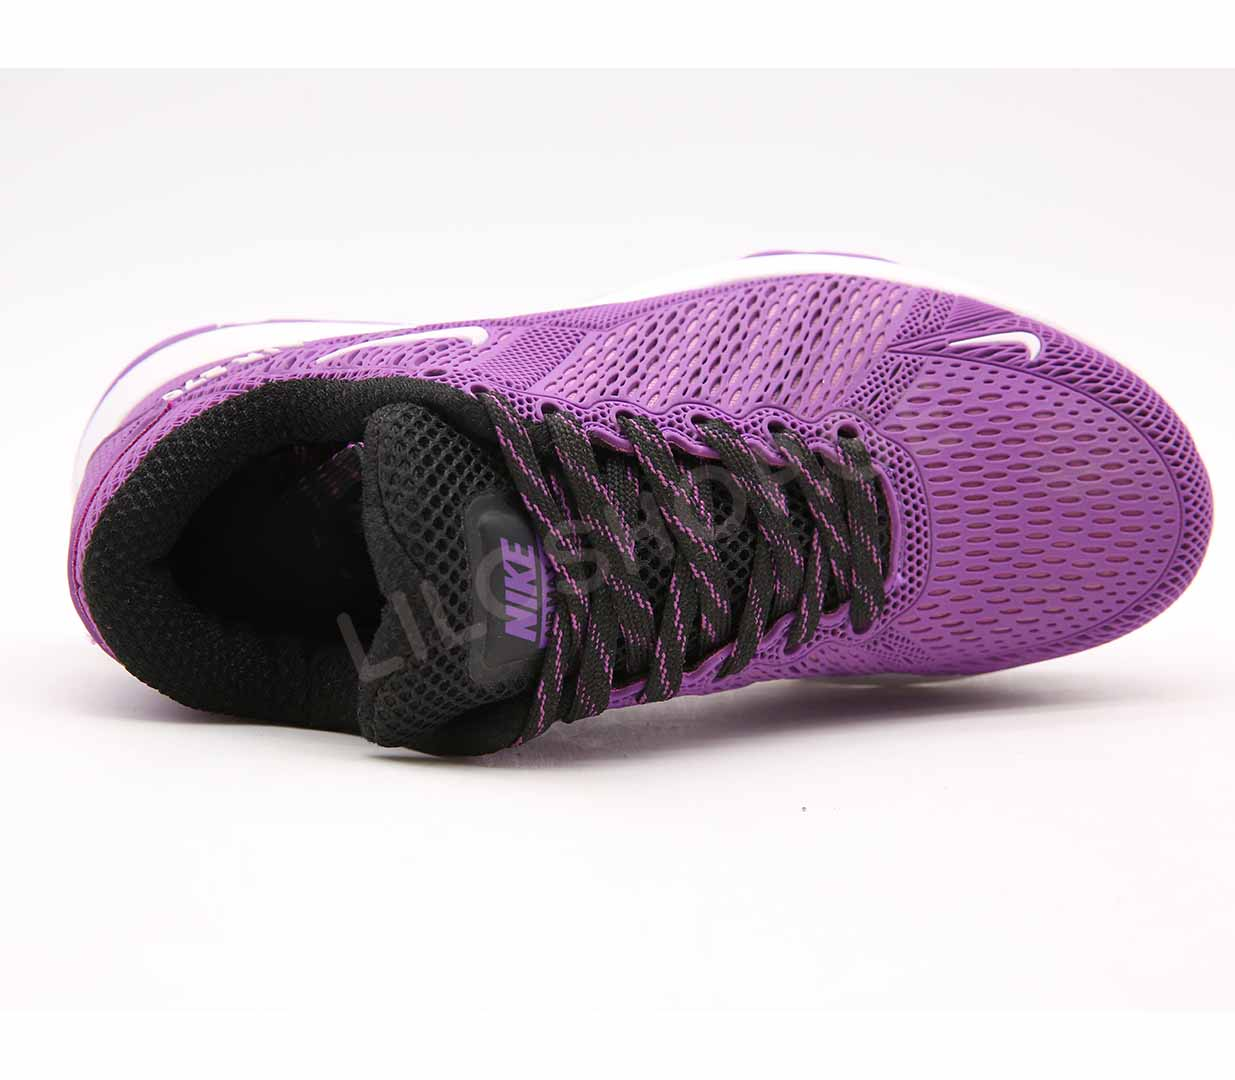 936a1ae5 Home/ Shoes/ Boy/ Botas NIke Air 270. 104 of 185. Hover over an image to  enlarge